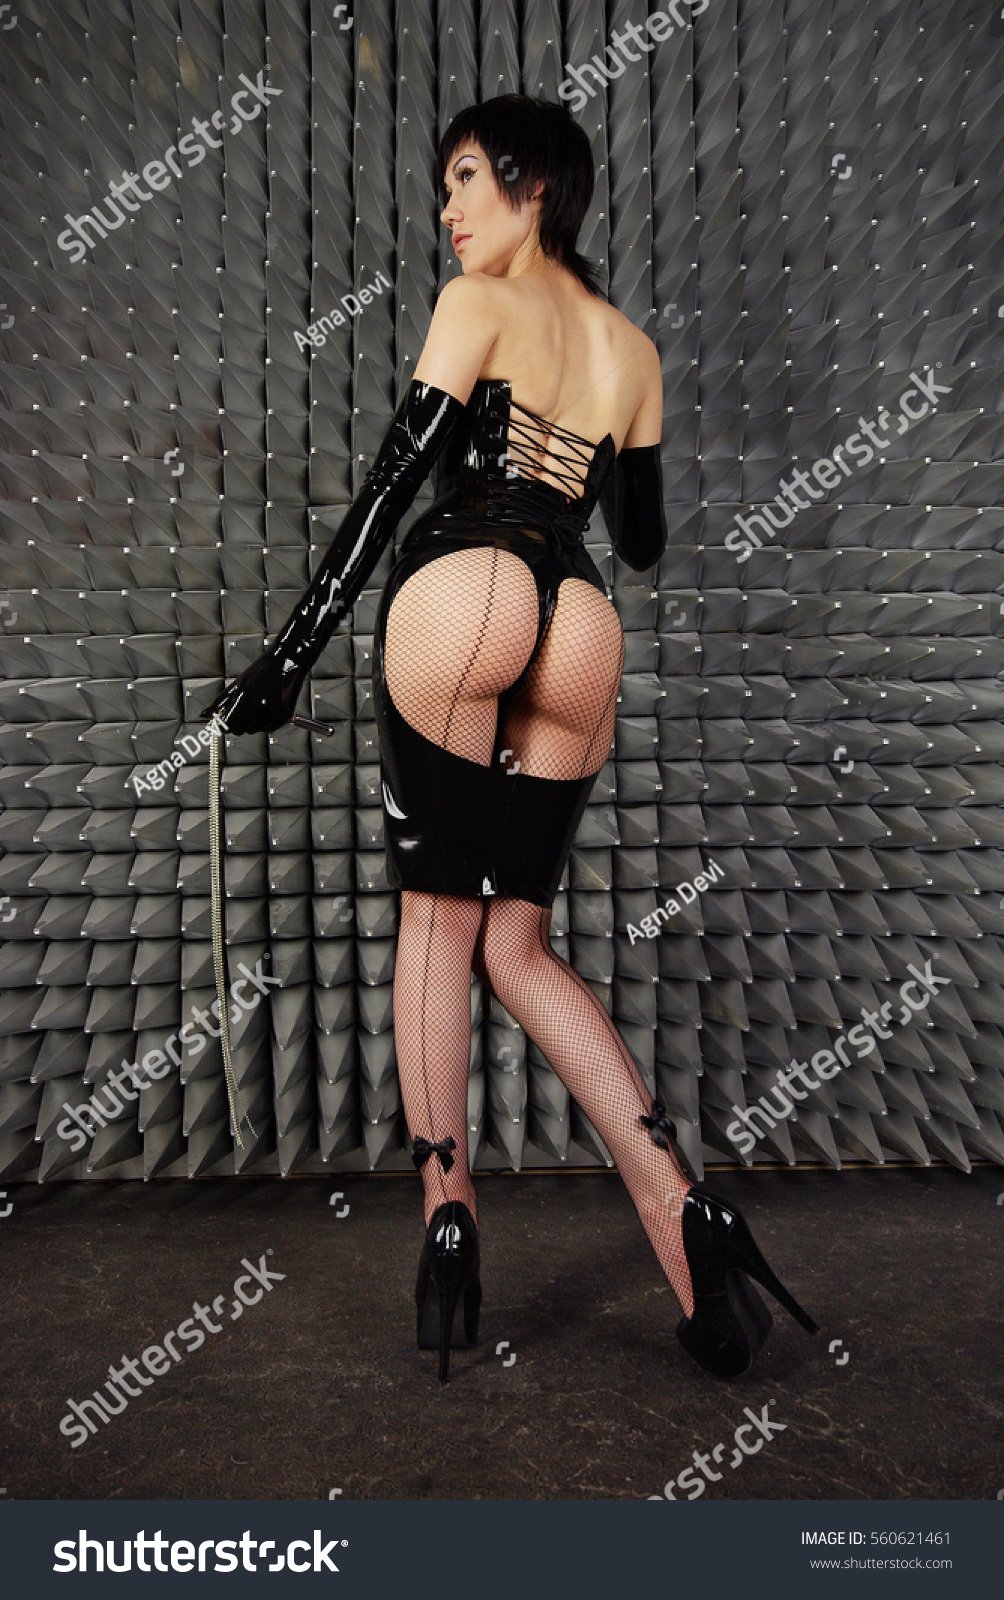 BDSM Fetish Black Latex Rubber Mistress